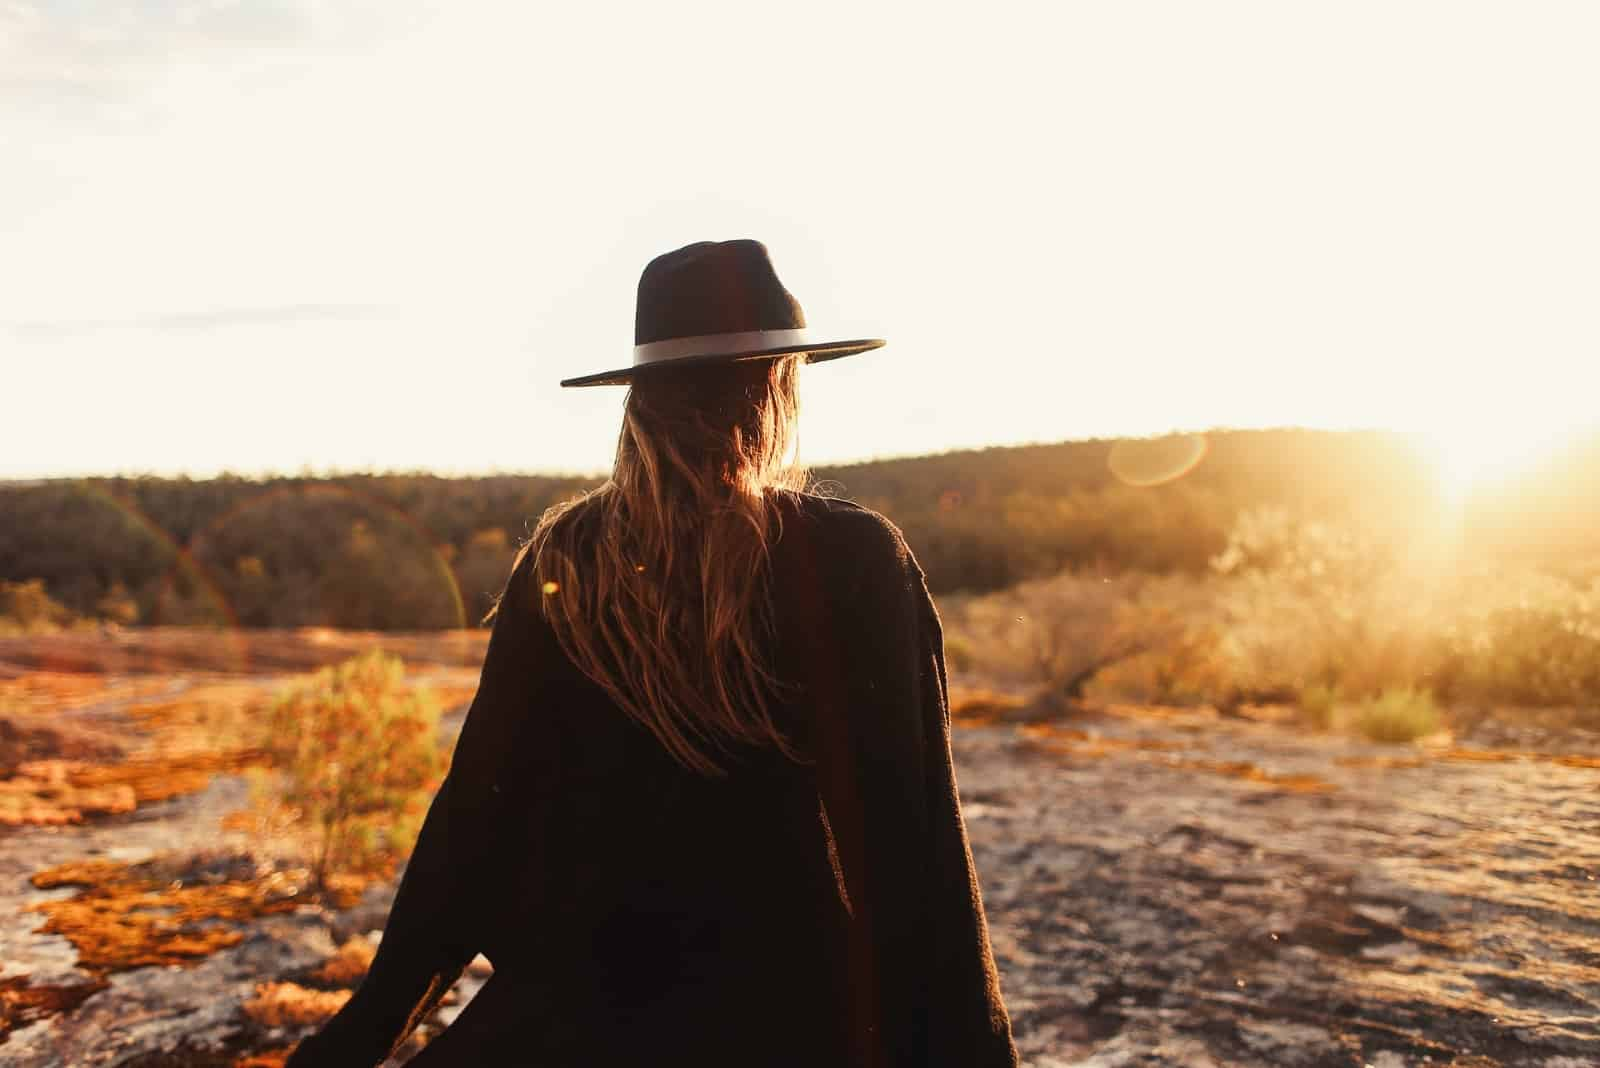 woman with hat standing on rocks during sunset